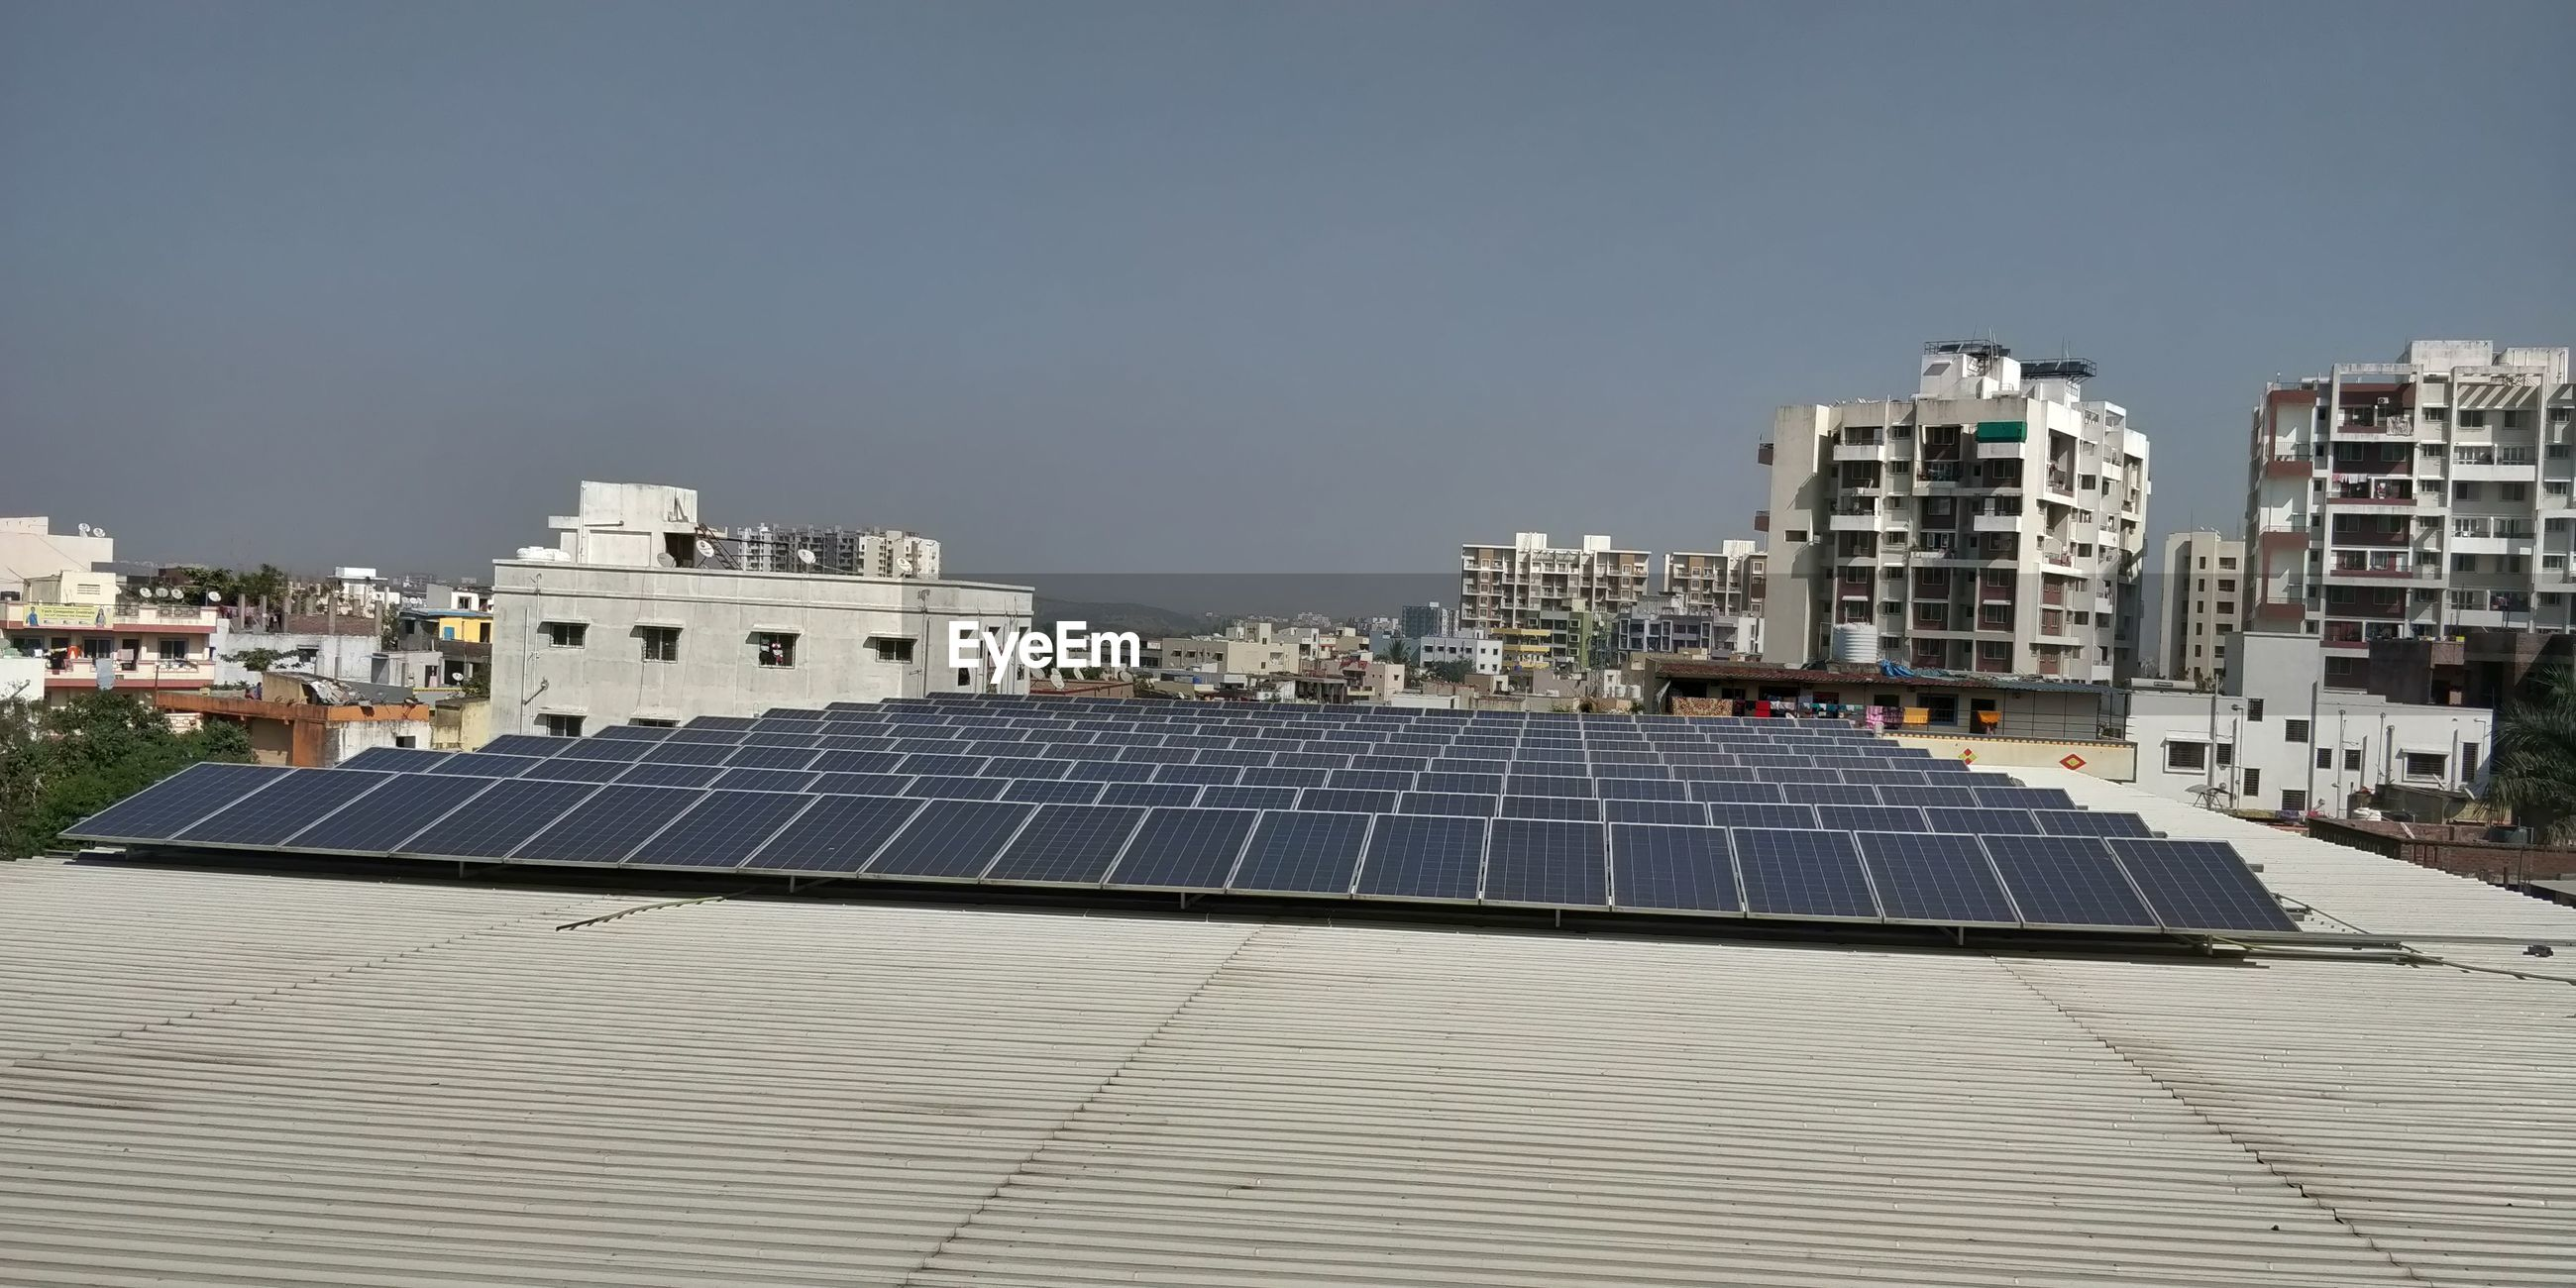 Solar panels on buildings against sky in city